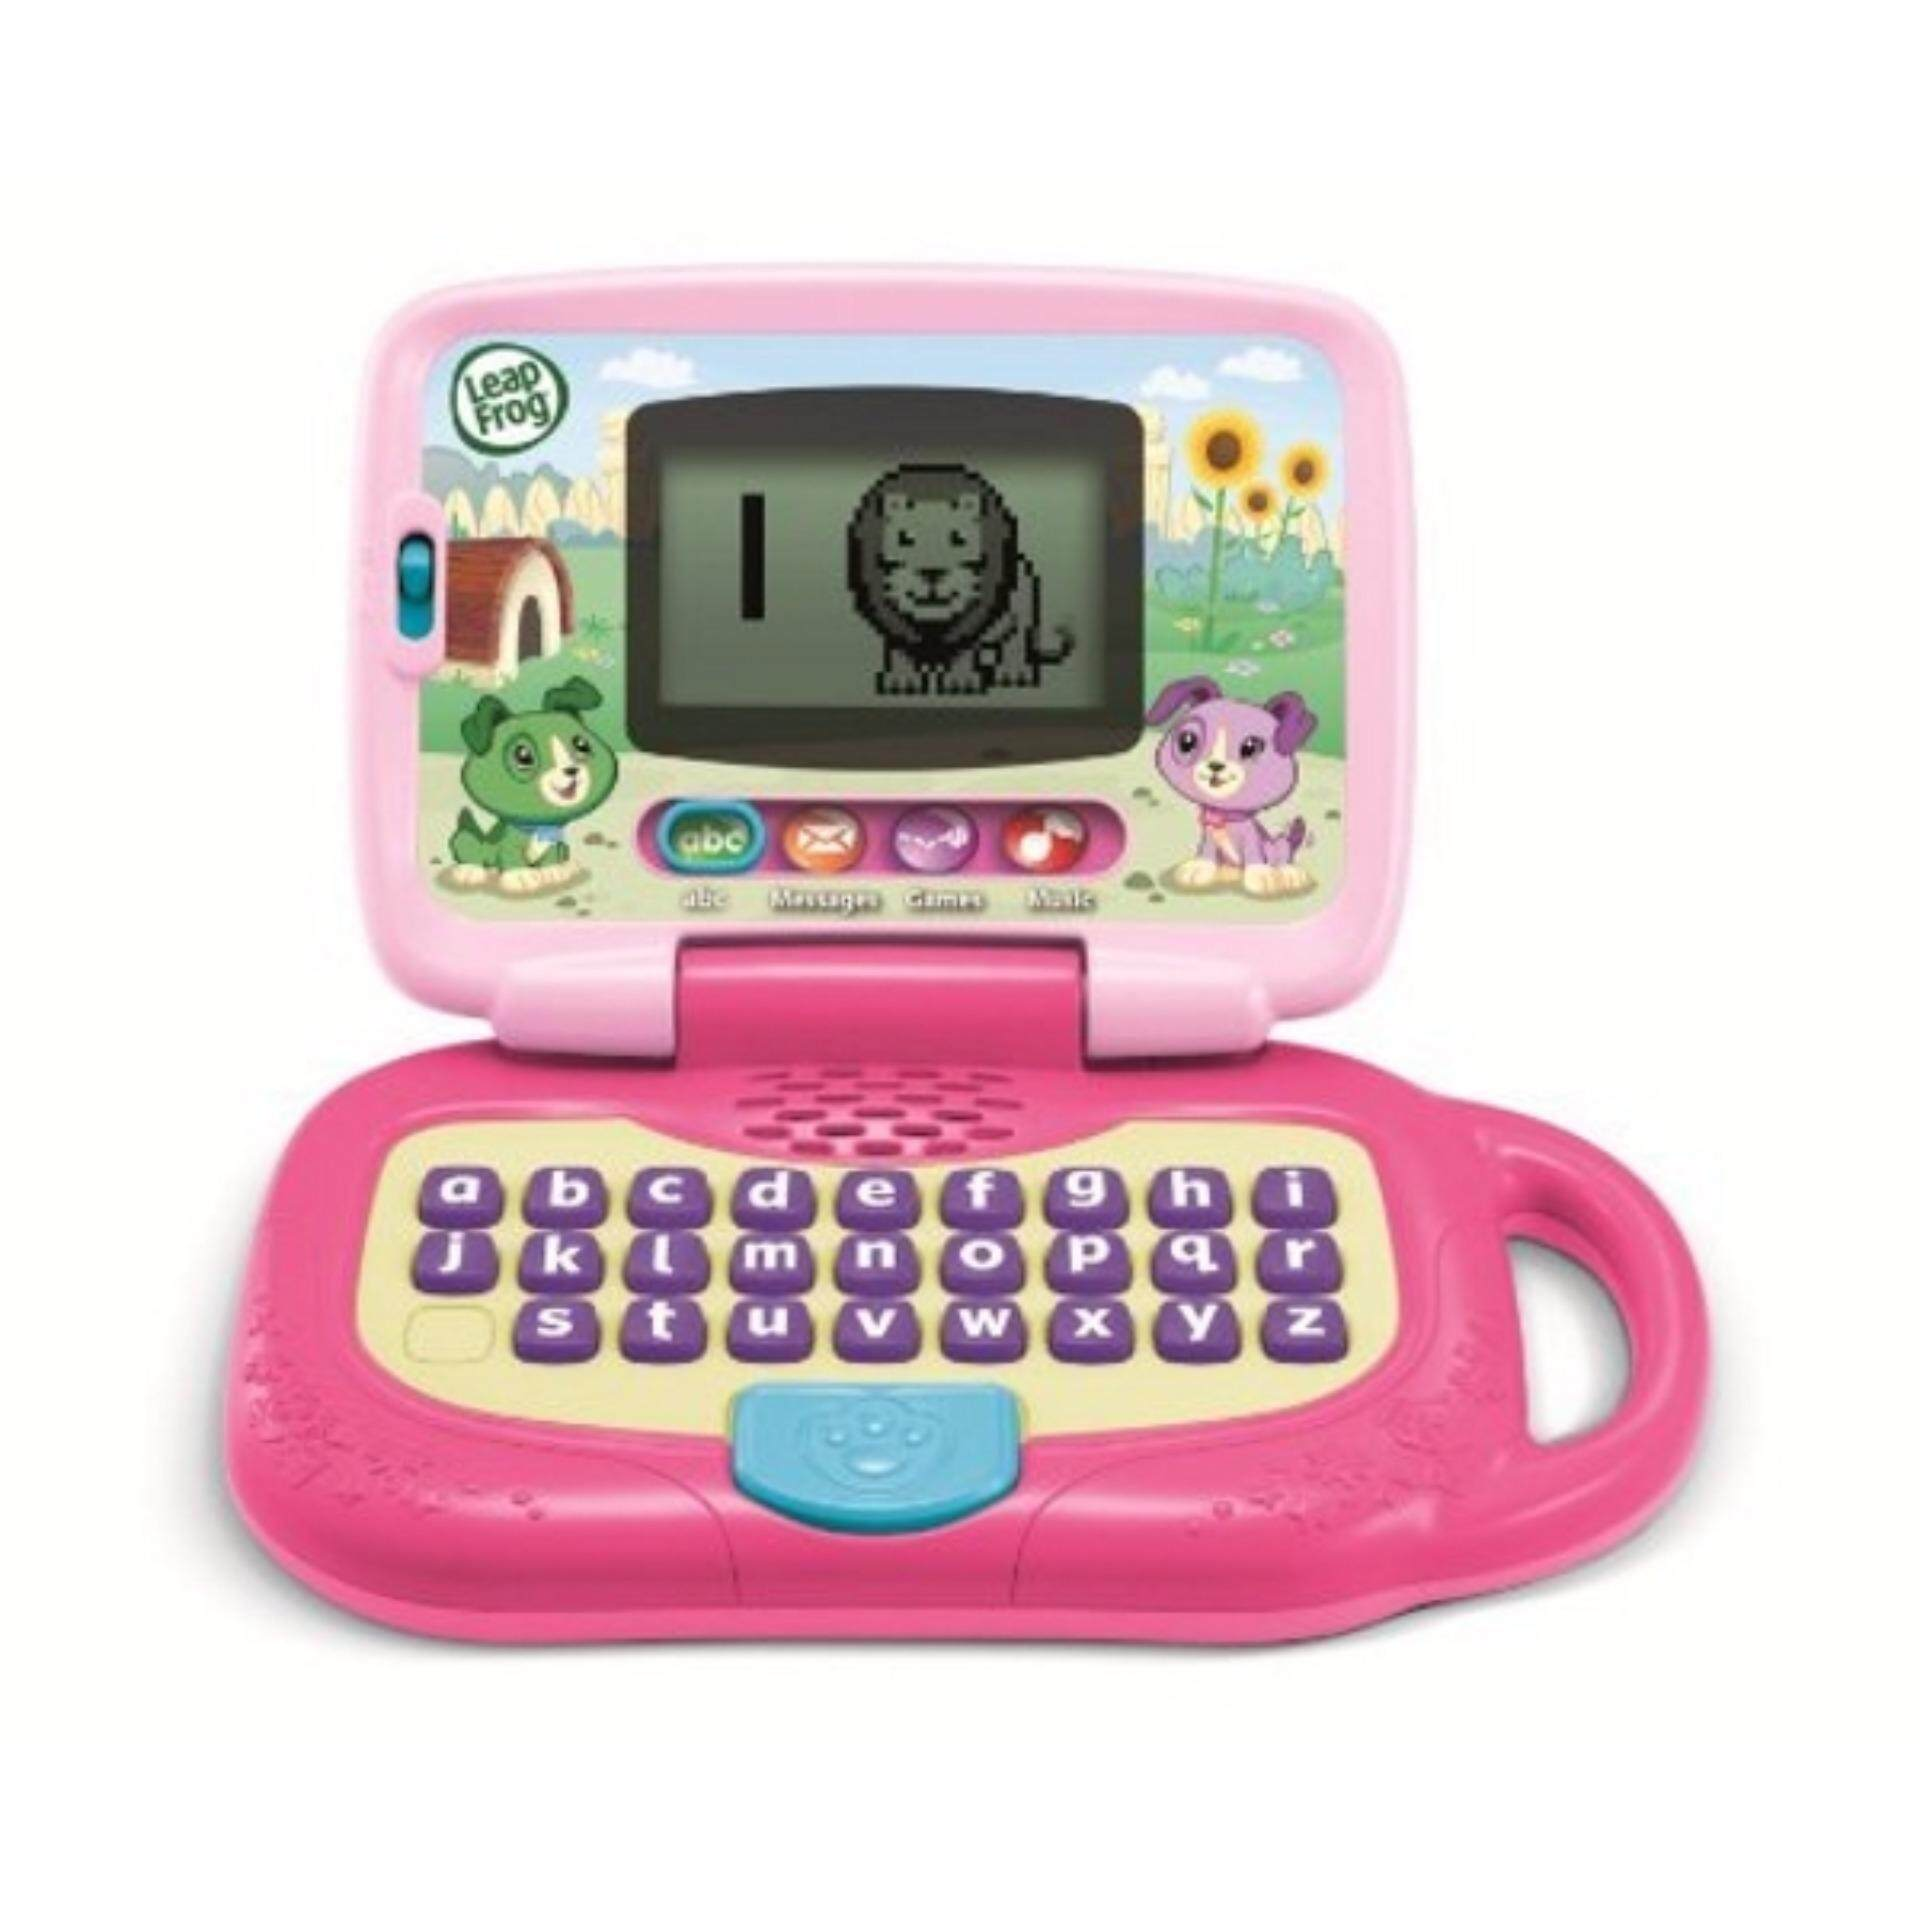 Leap Frog My Own Leaptop (Pink) toys education